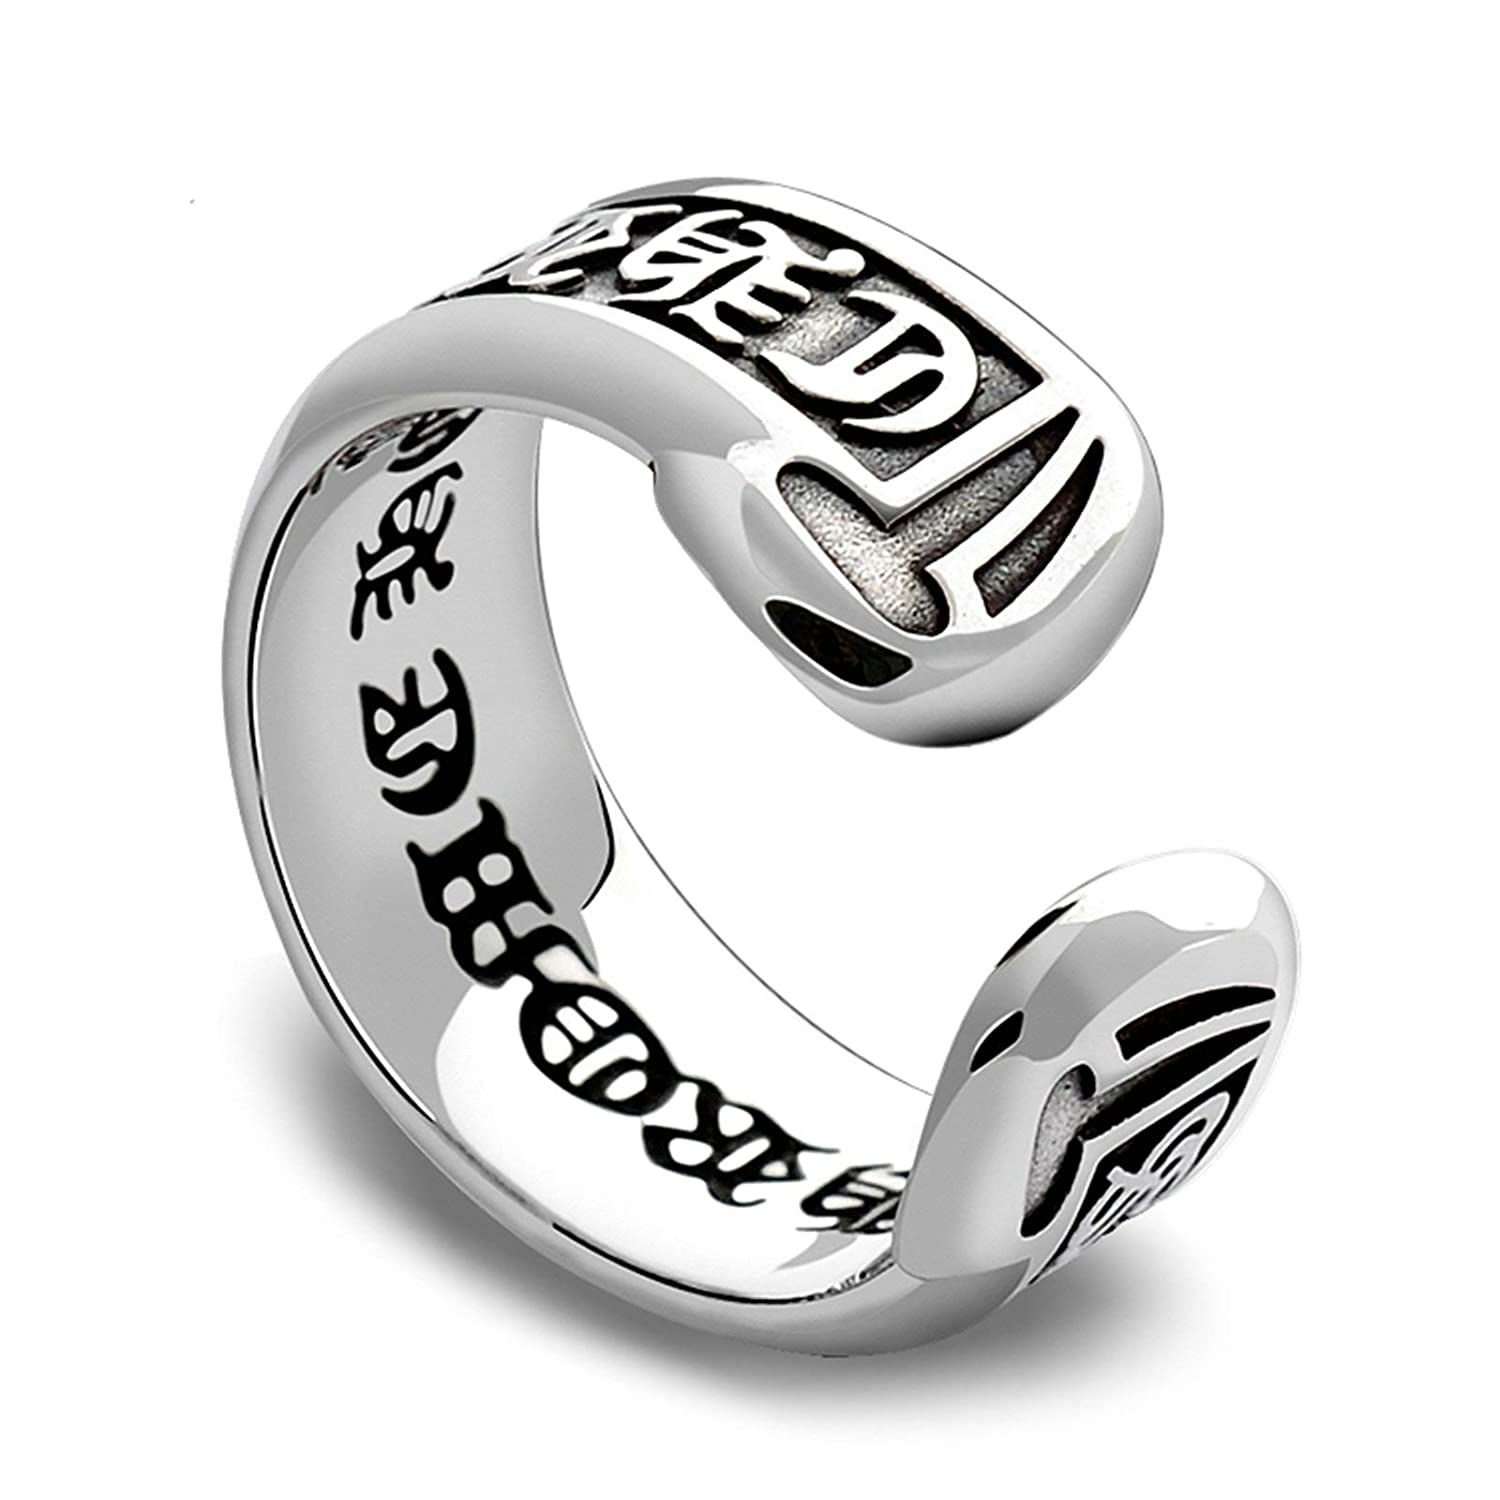 AMDXD Jewelry Women Men Wedding Ring Sterling Silver Vintage Mantra Ring Size 5 to Size 12